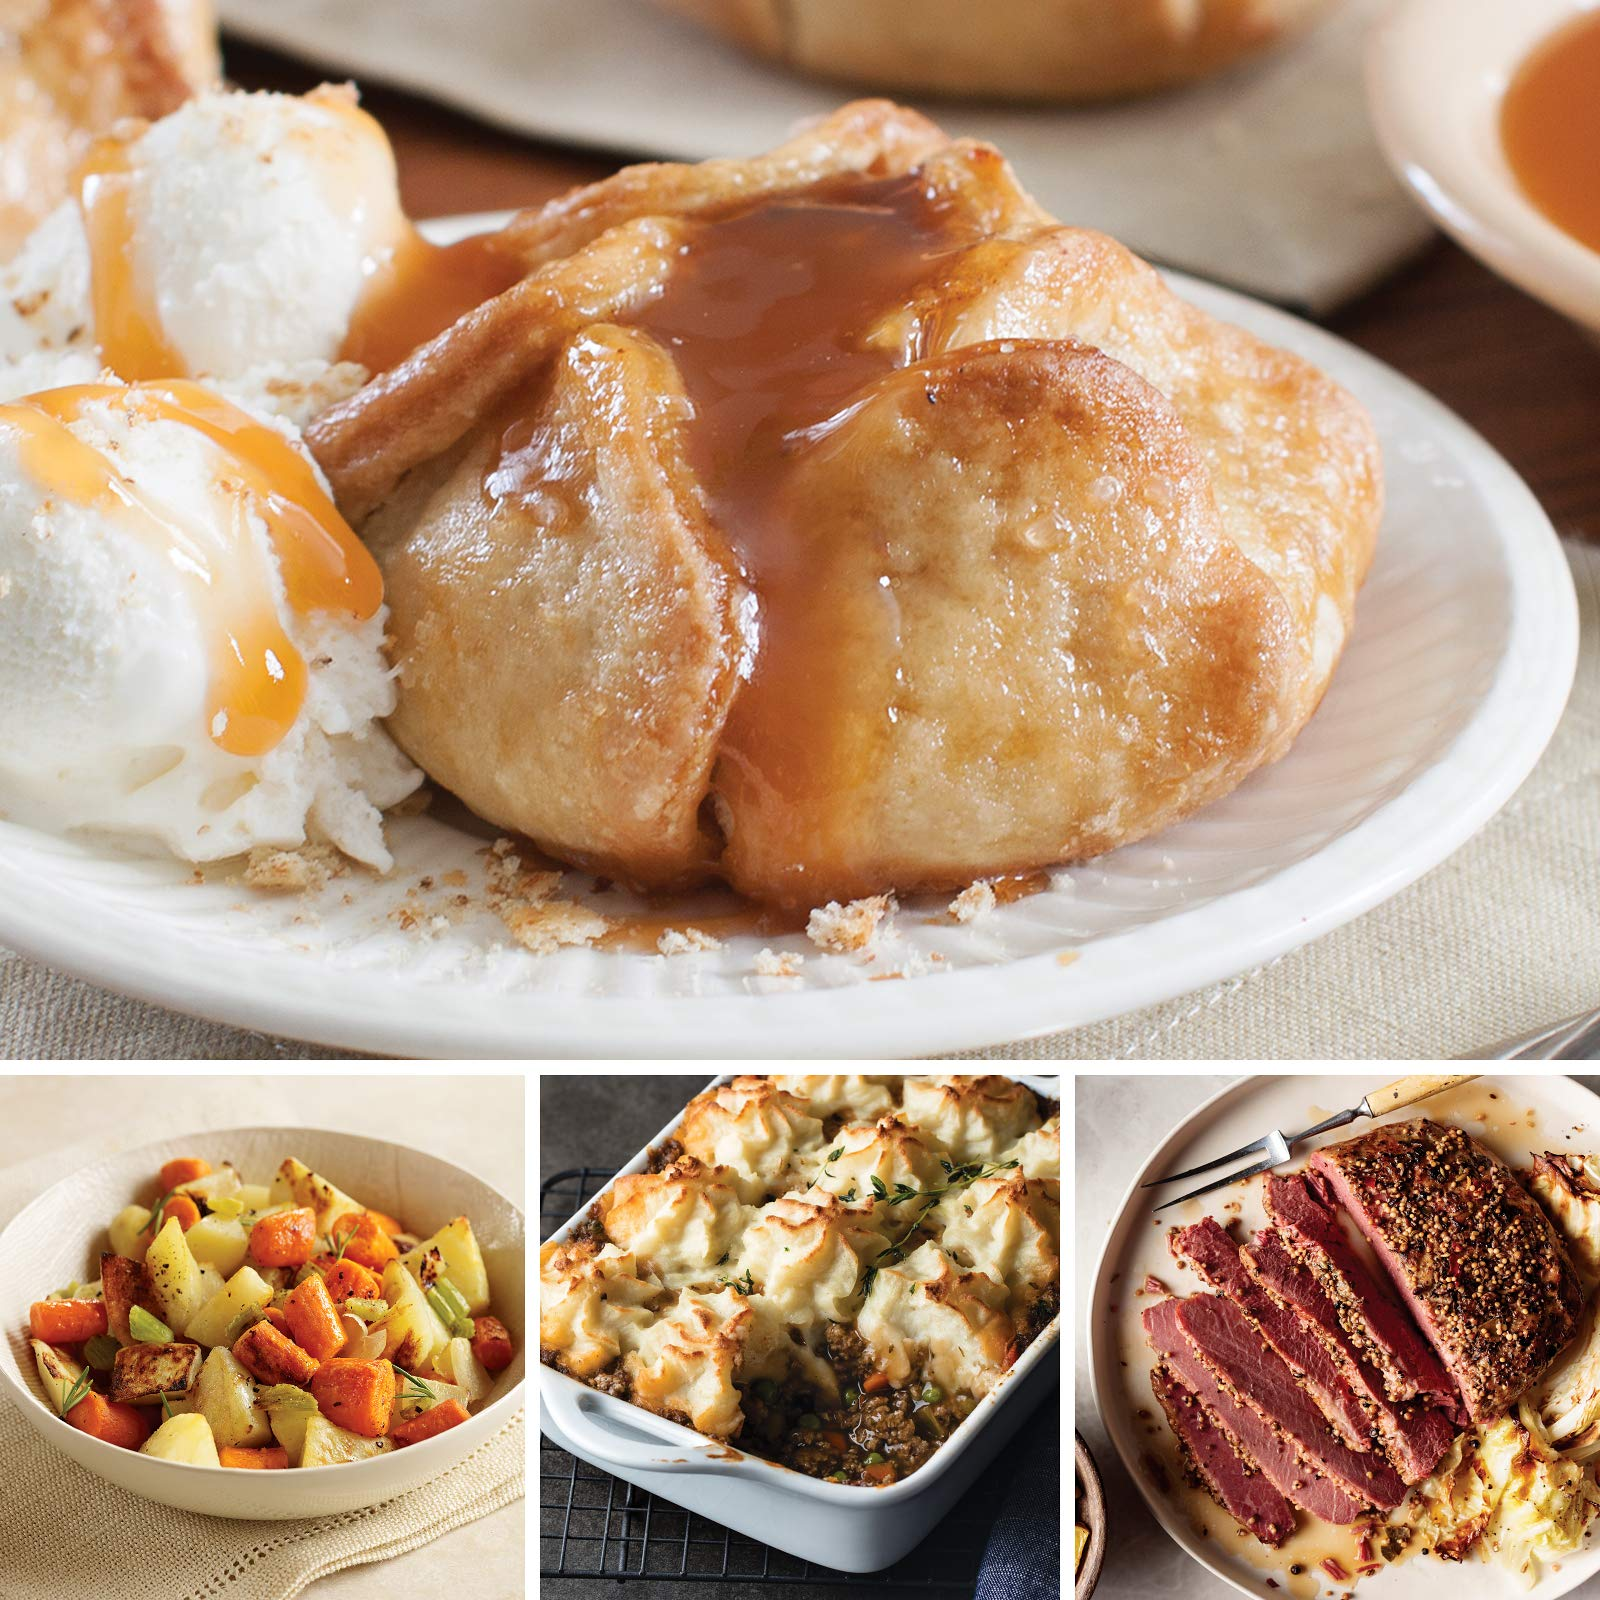 Omaha Steaks St. Patrick's Day Dinner Collection (7-Piece with Beef Shepherd's Pie, Rustic Corned Beef, Rustic Roasting Vegetables, and Individual Caramel Apple Tartlets)